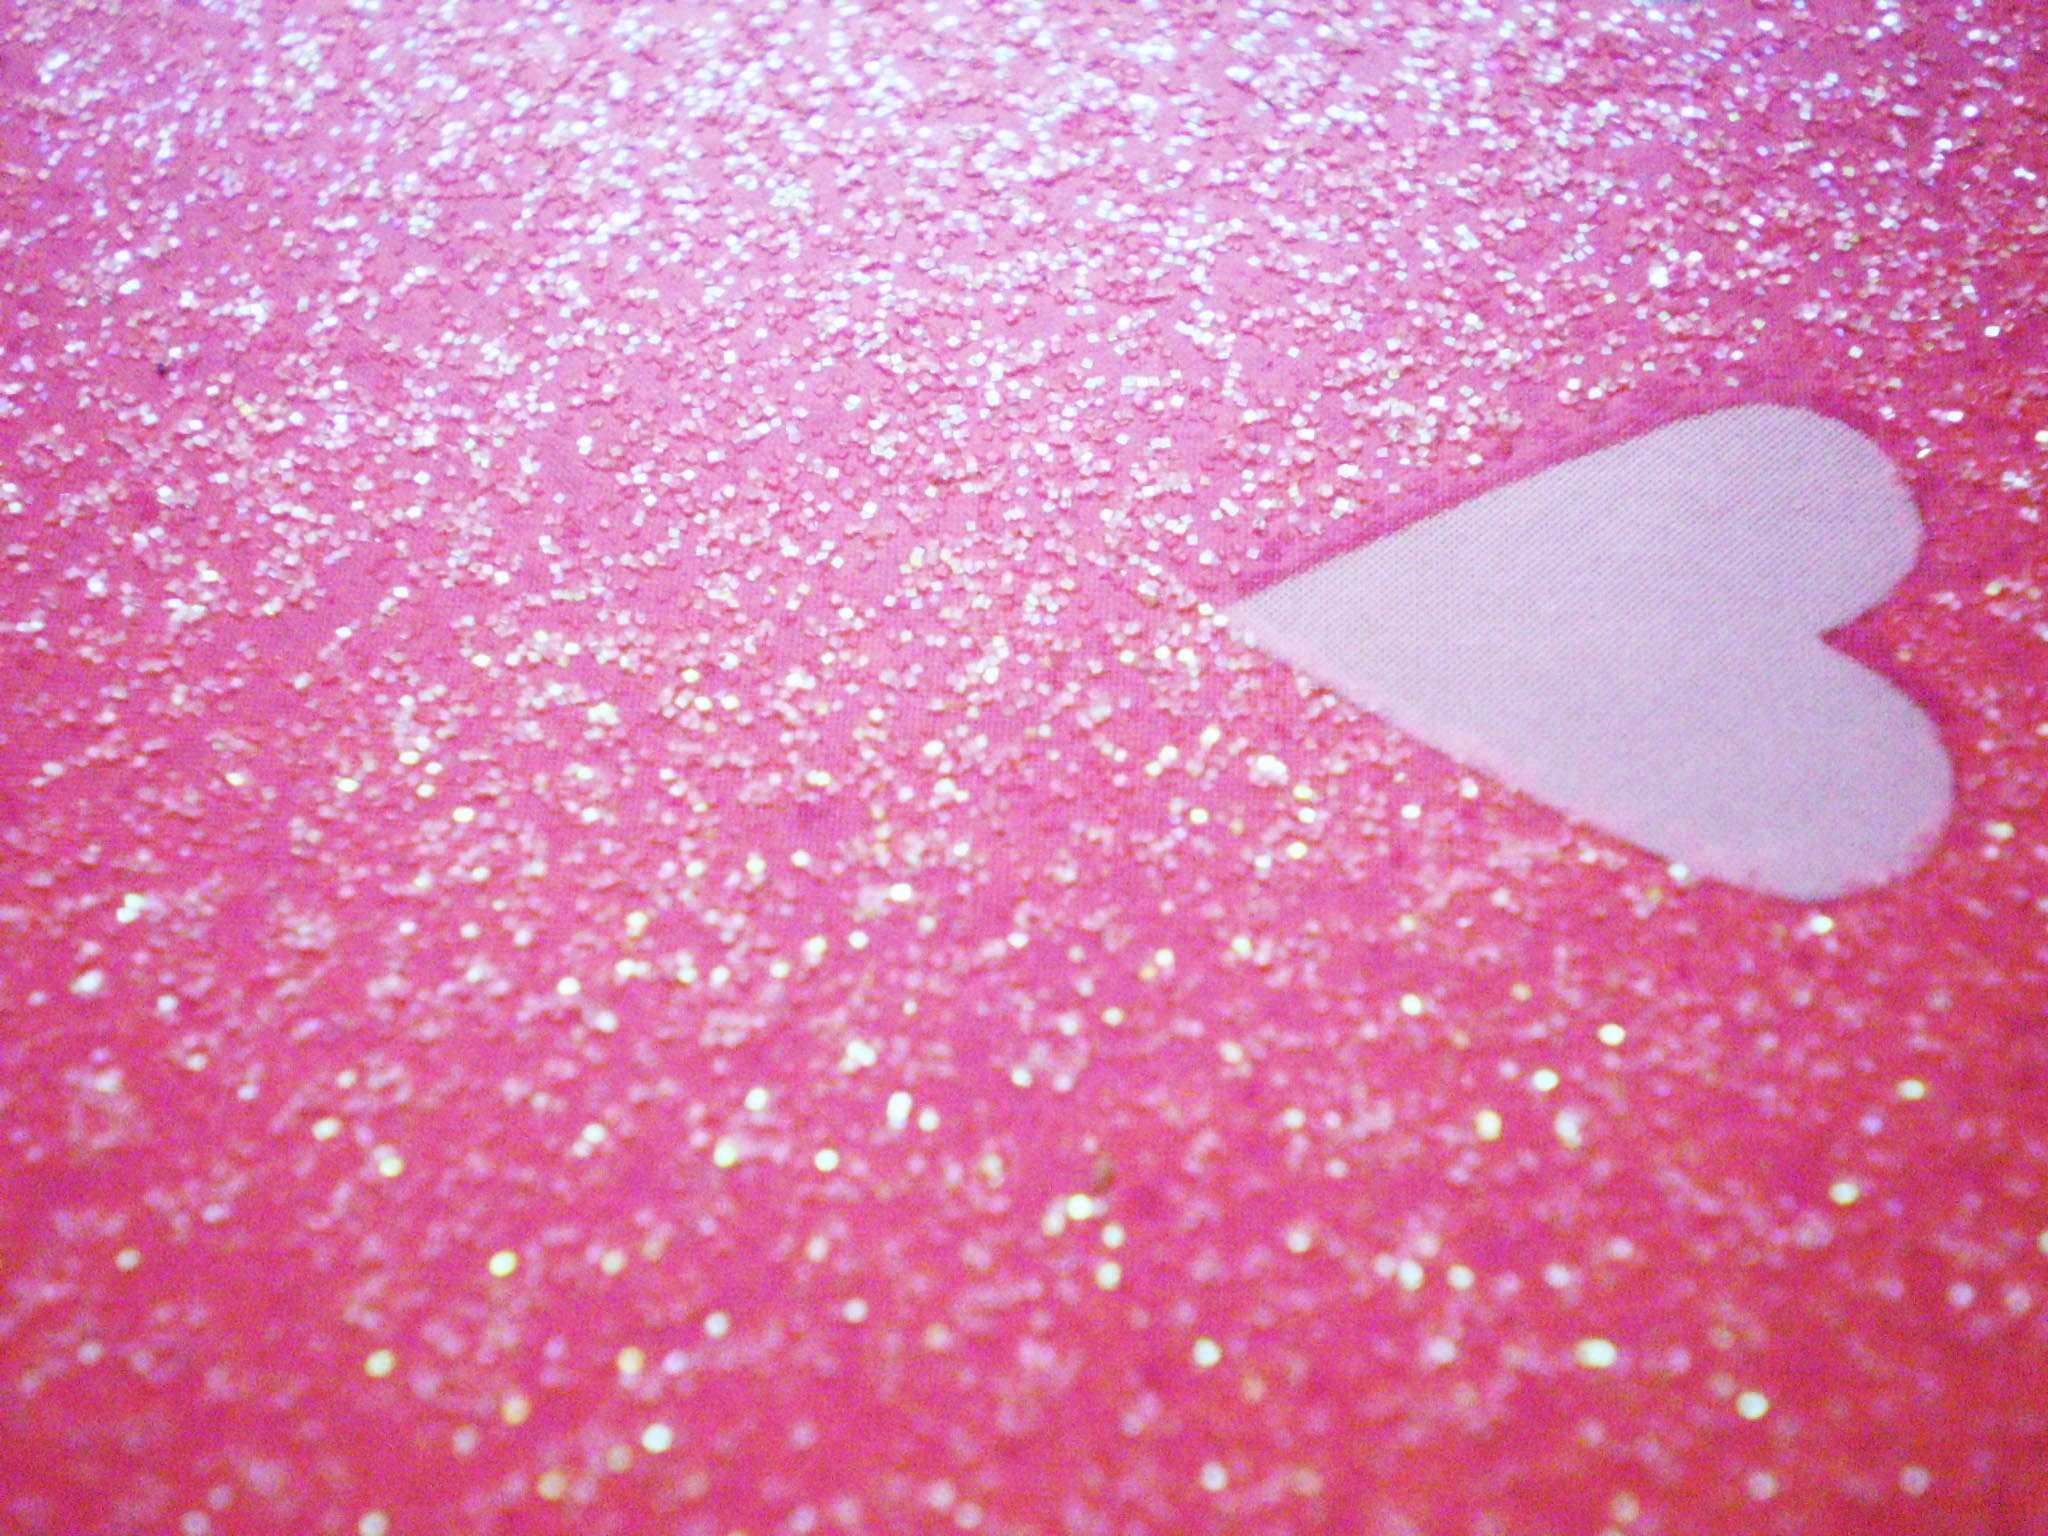 Res: 2048x1536, Pink Glitter Wallpaper Full Hd Pics Love Media File For Androids